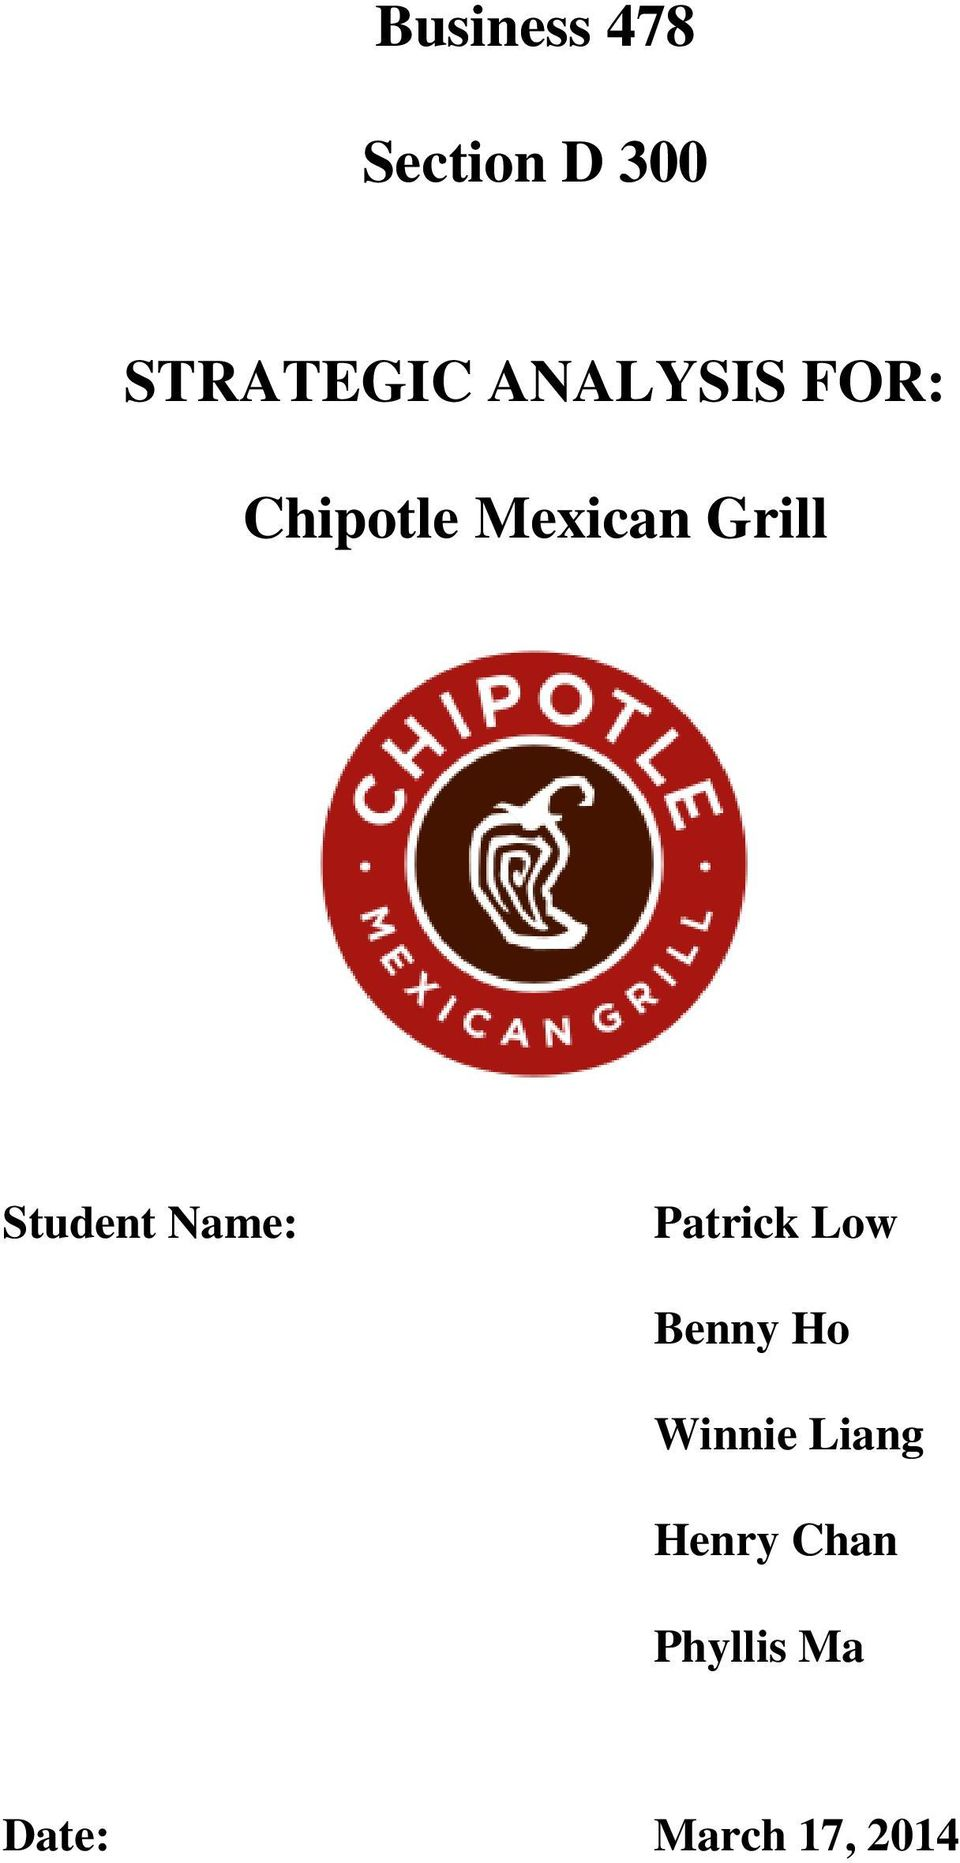 Business 478 Section D 300 Strategic Analysis For Chipotle Mexican